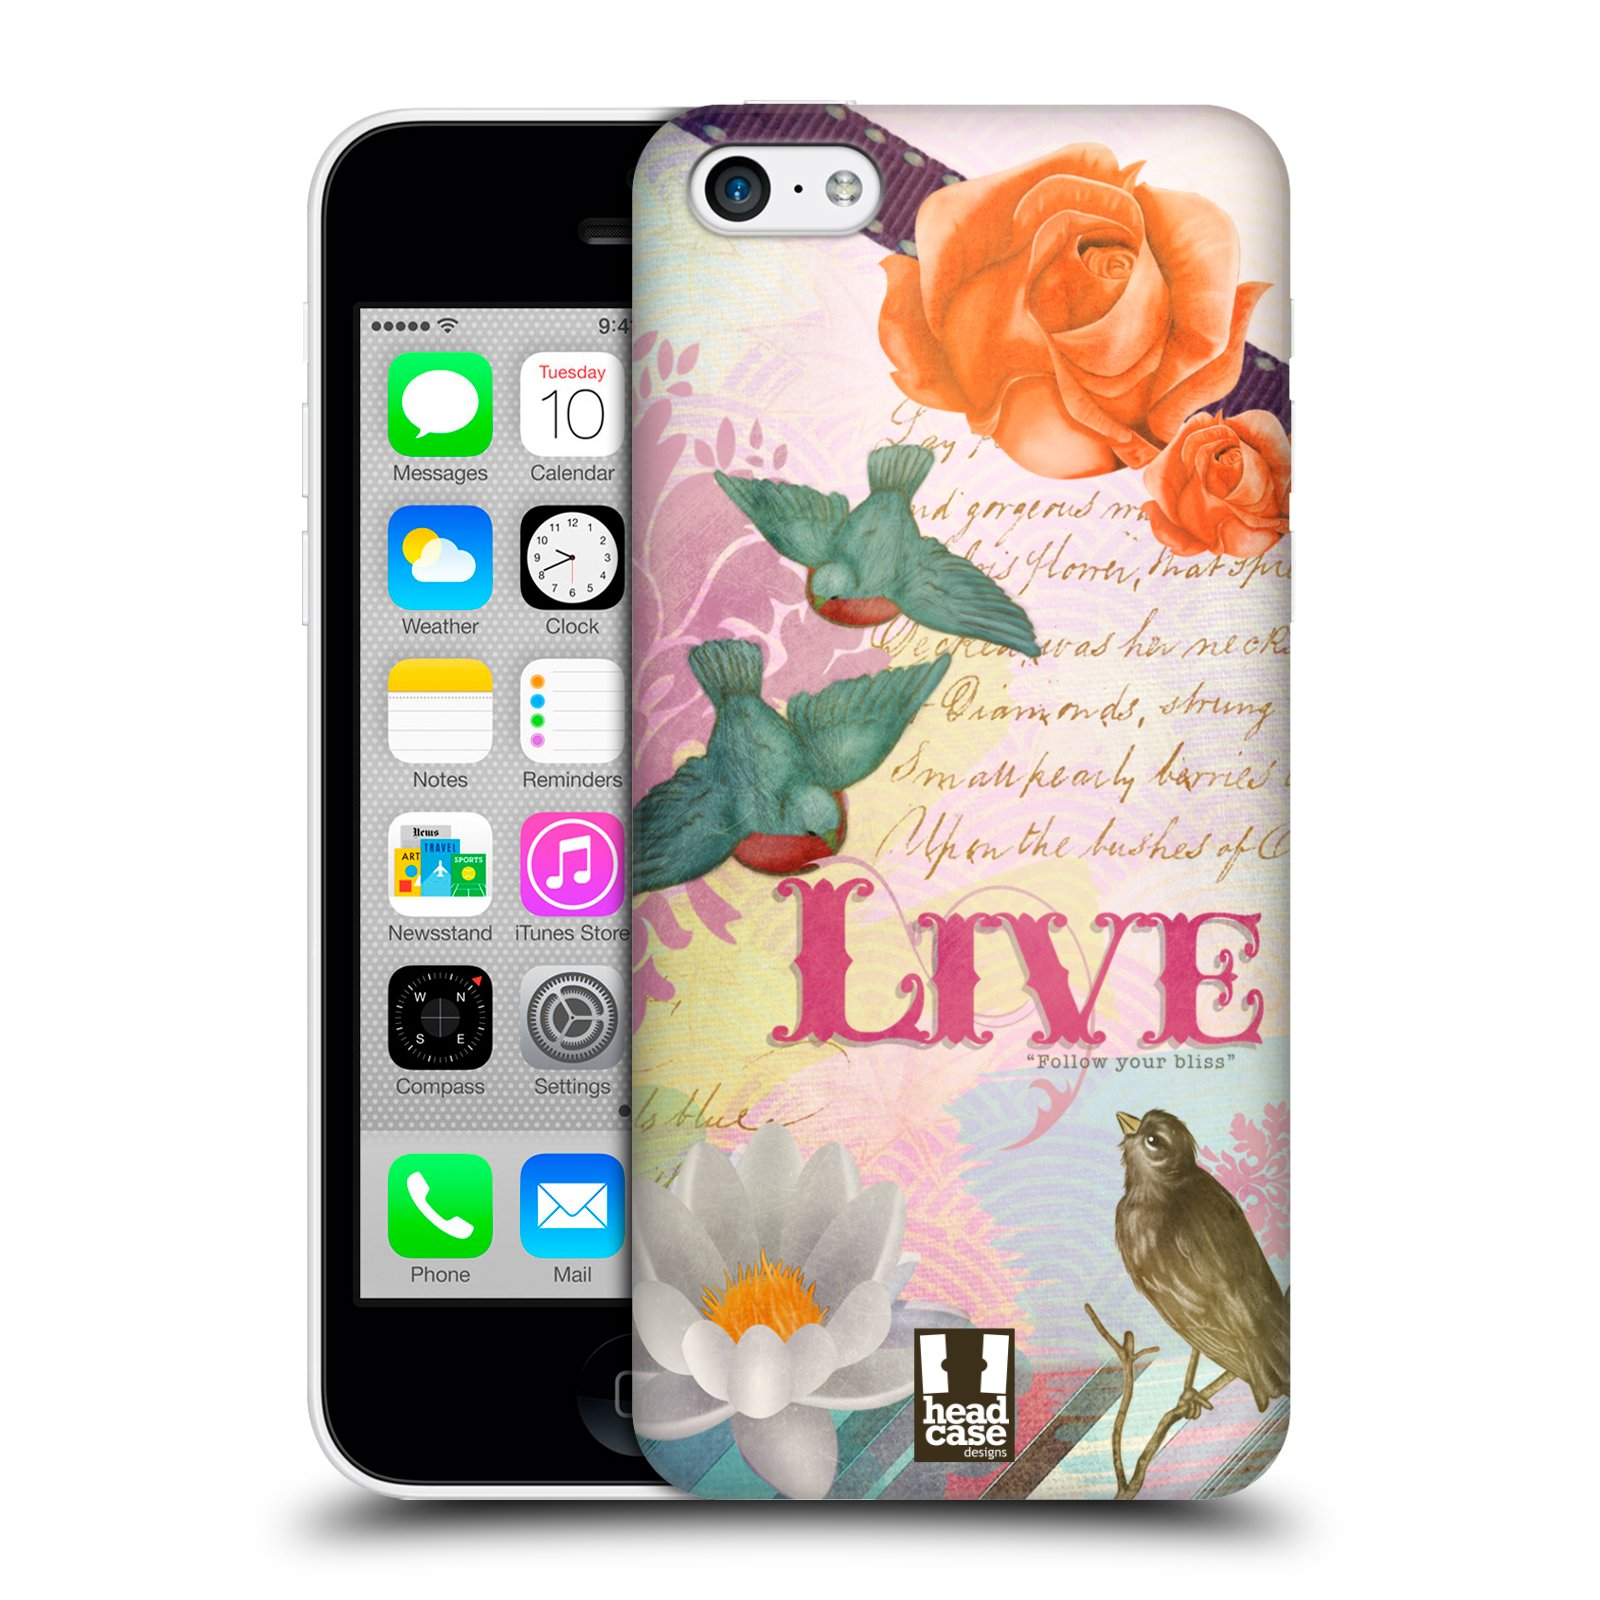 HEAD-CASE-DESIGNS-SIMPLE-JOYS-PROTECTIVE-BACK-CASE-COVER-FOR-APPLE-iPHONE-5C